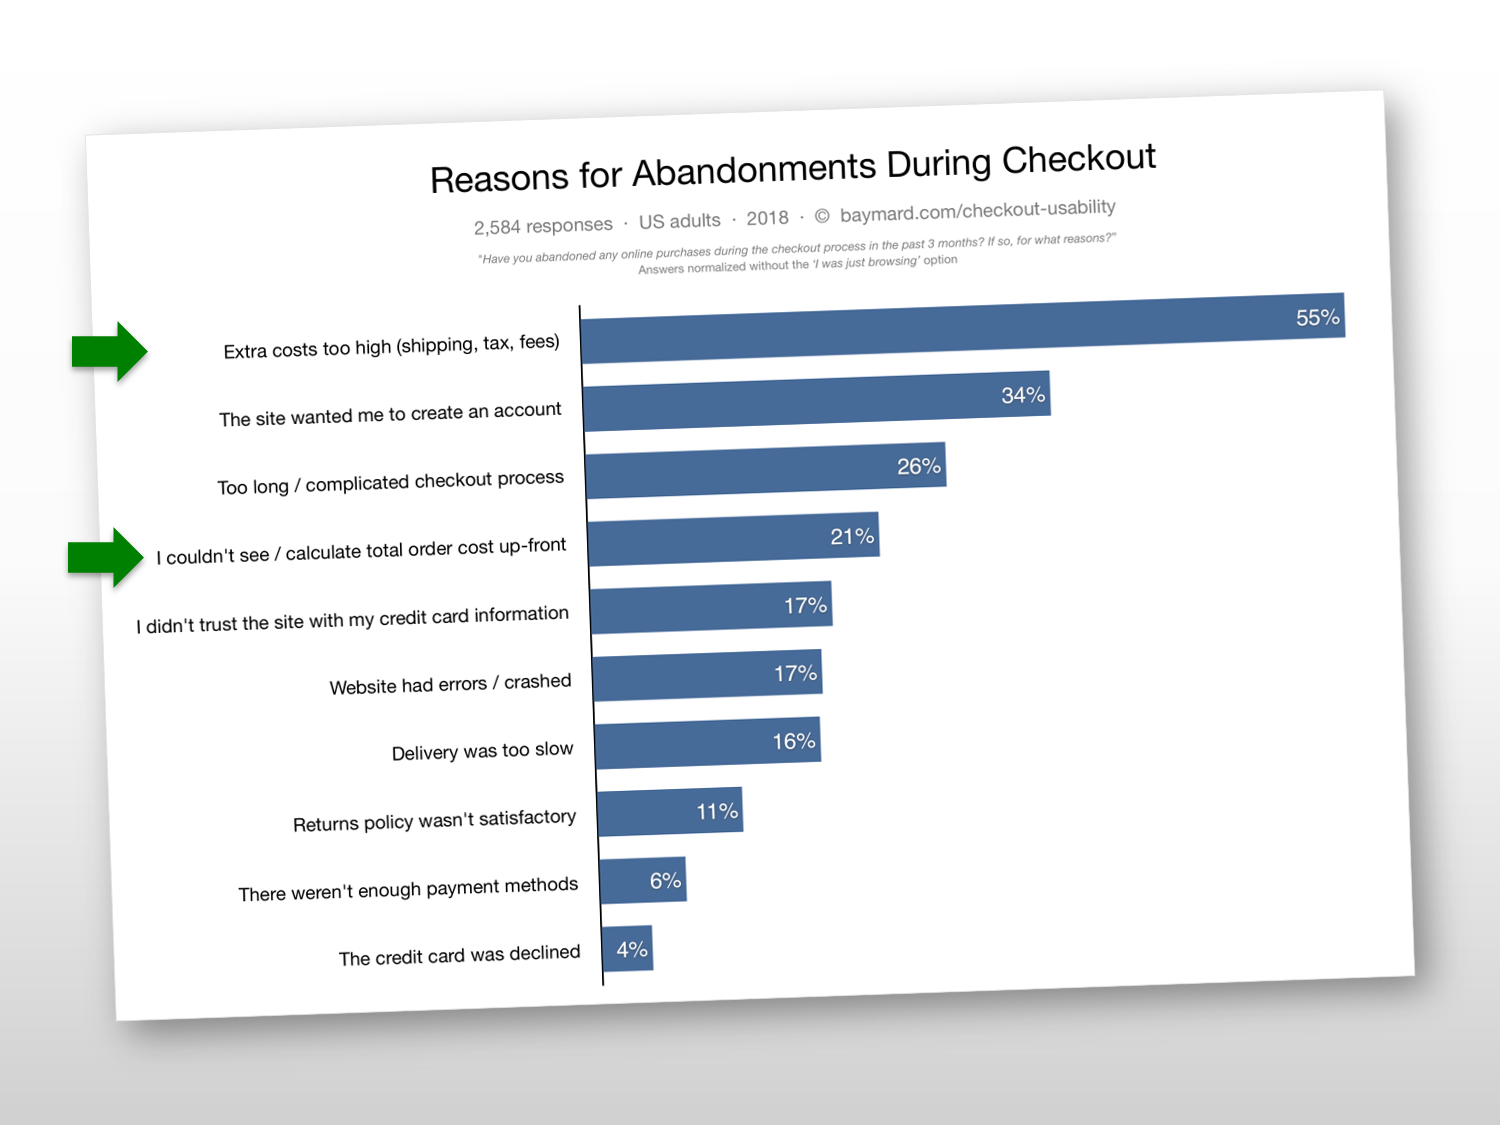 Reasons for Cart Abandonment 2018